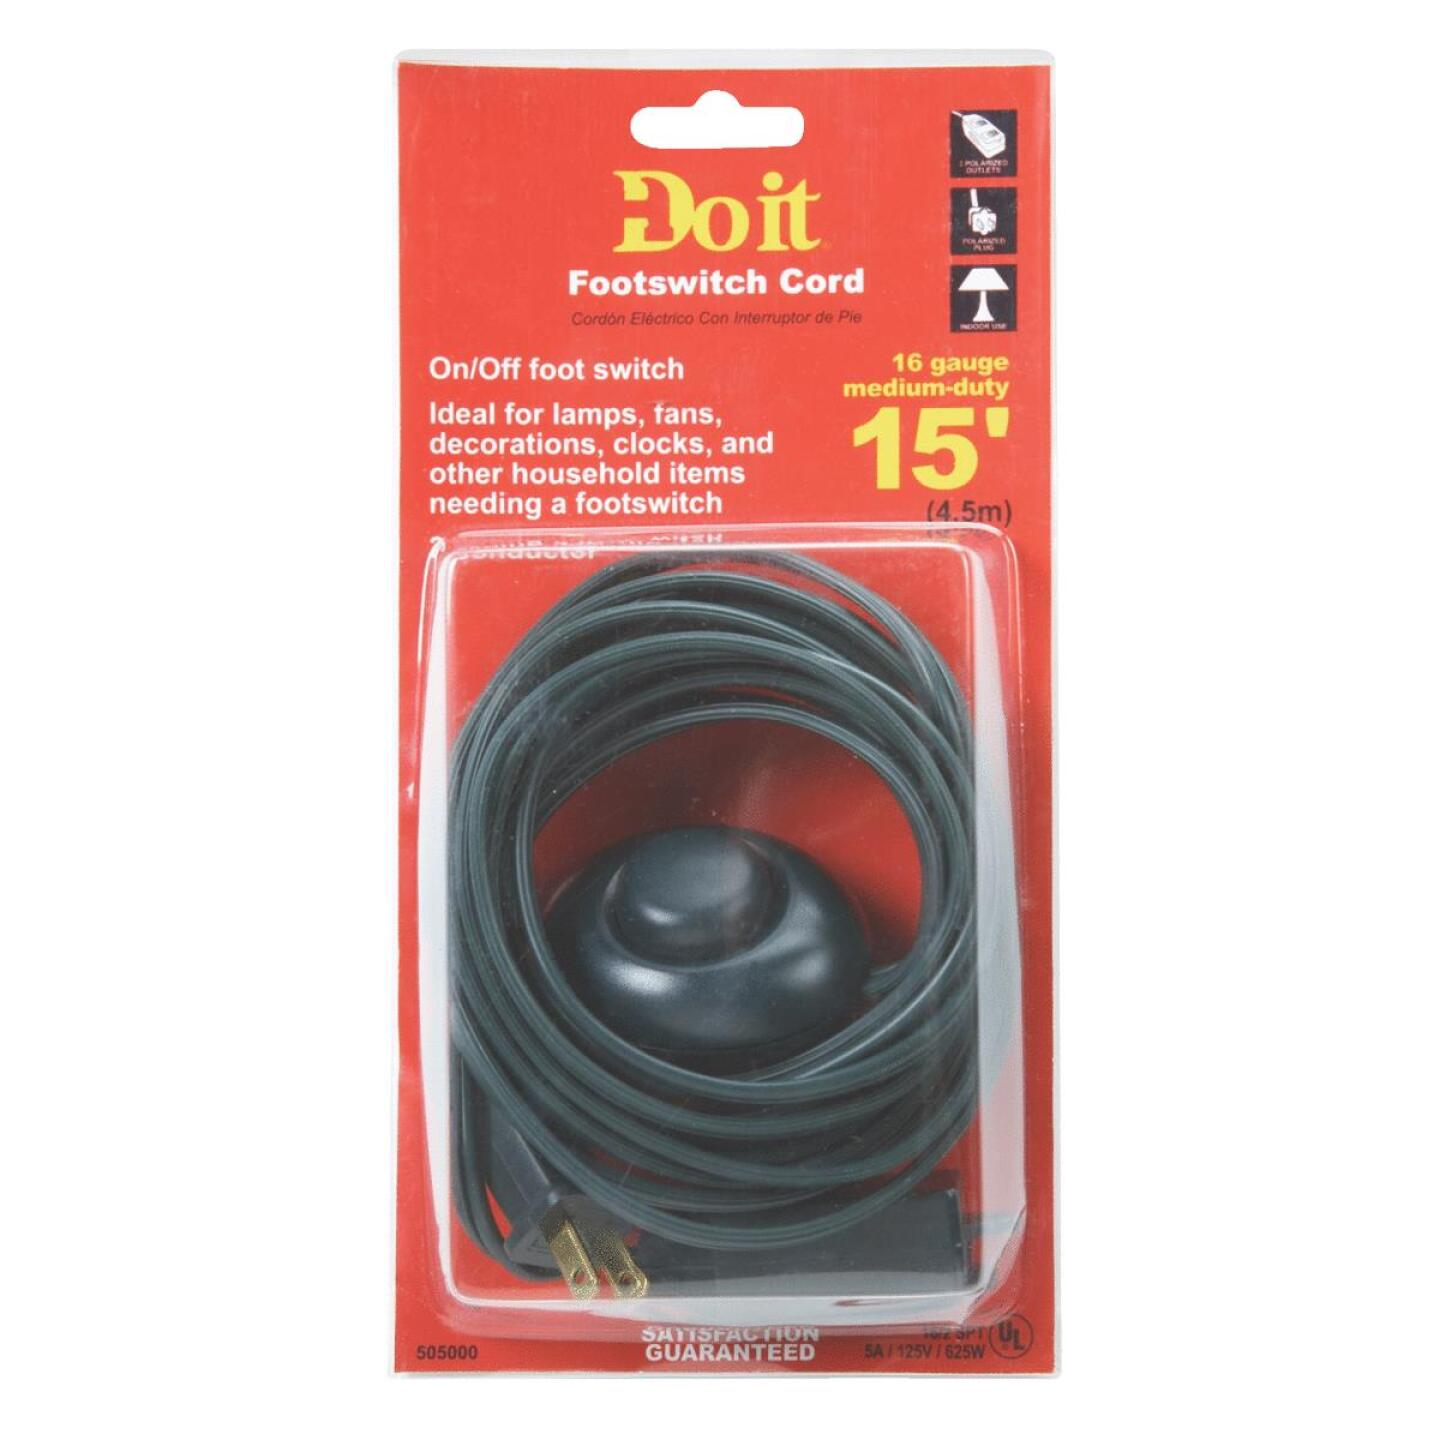 Do it 15 Ft. 18/2 Green Extension Cord with Foot Switch Image 2